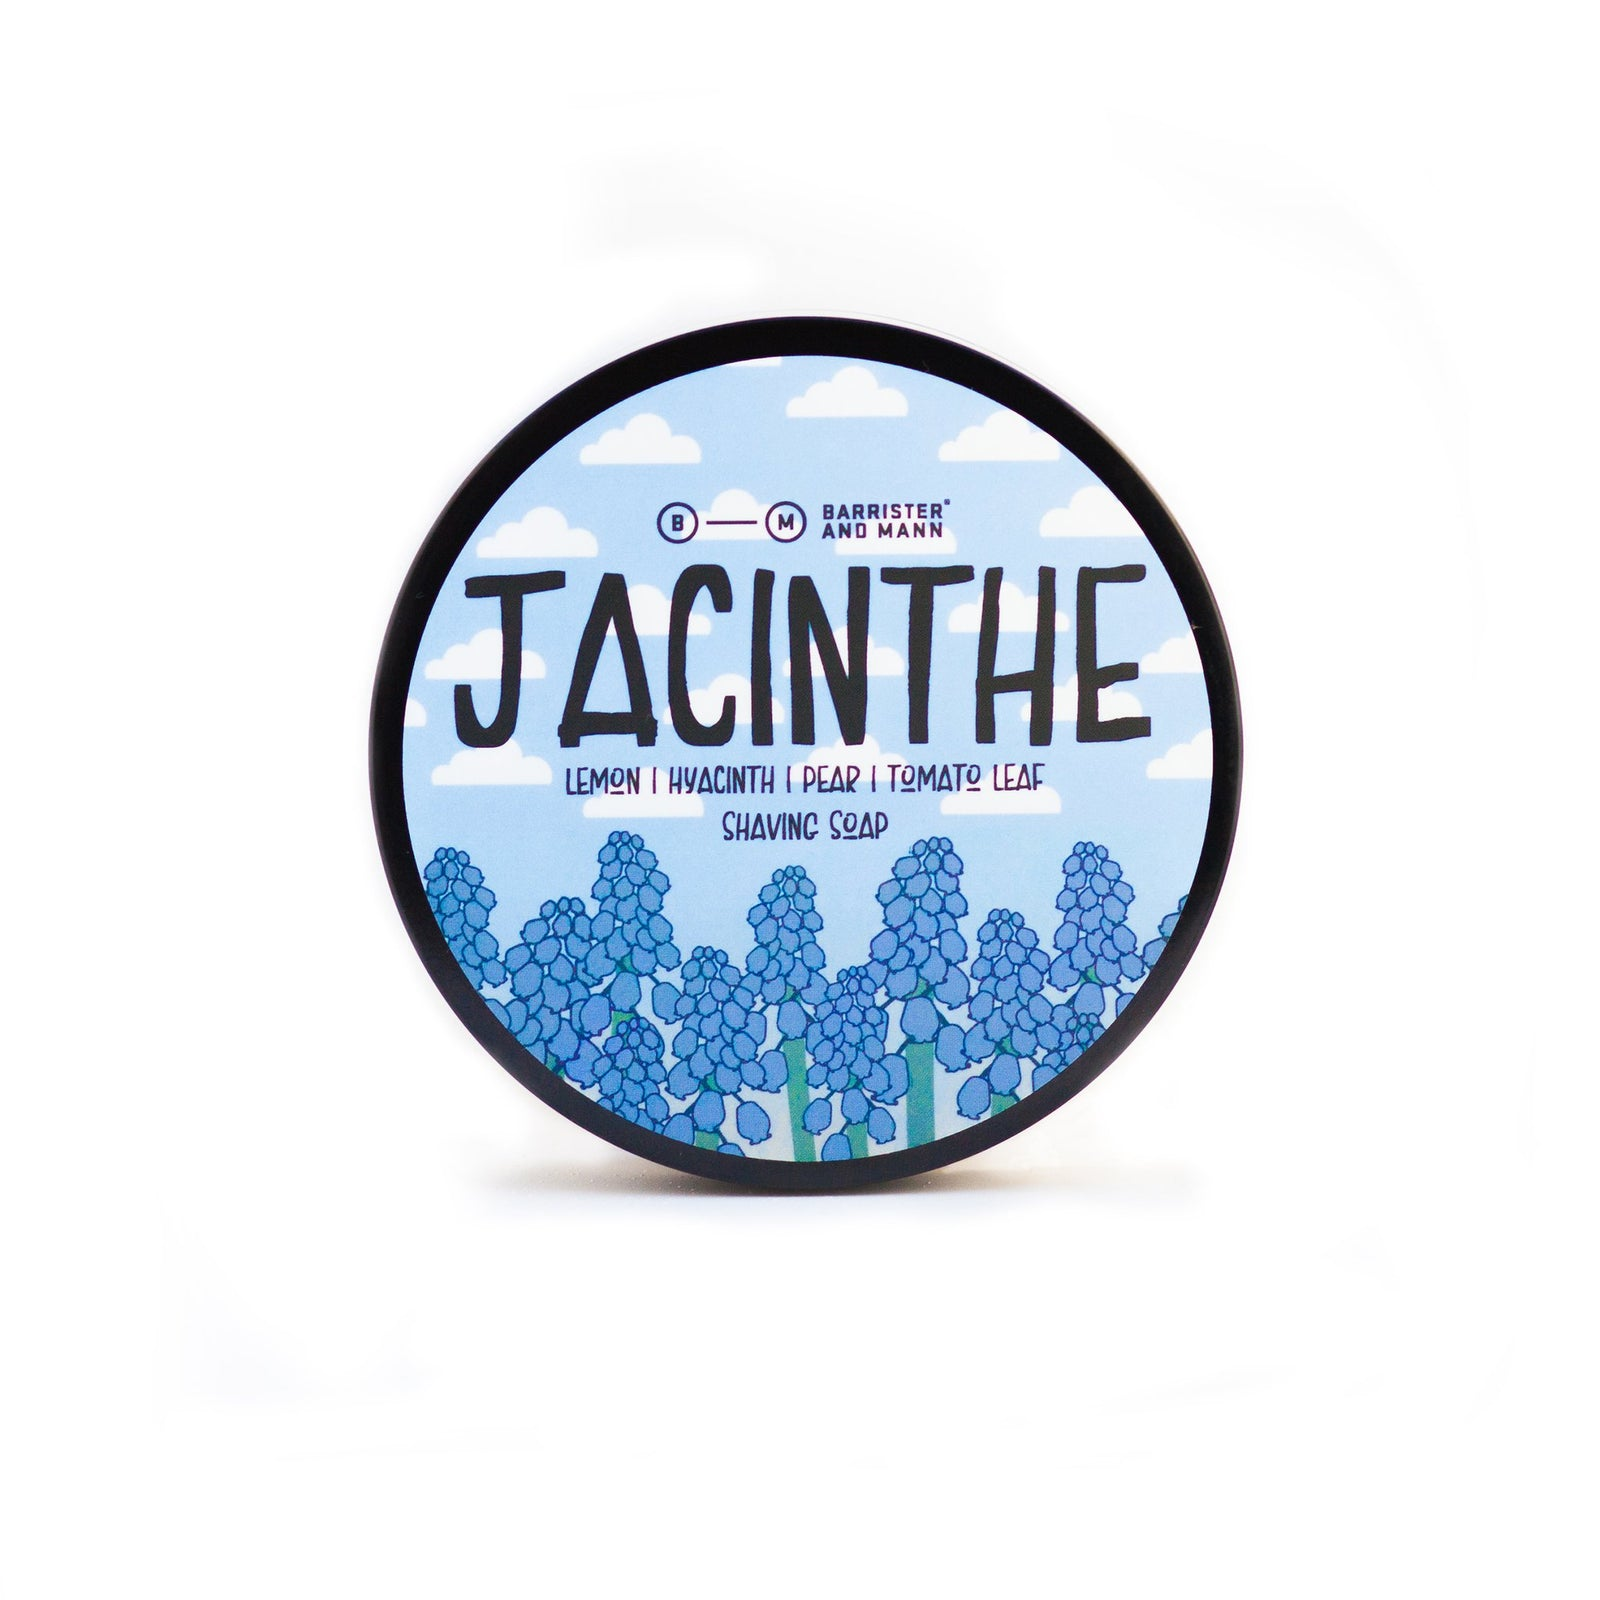 Barrister and Mann - Jacinthe Tallow Shaving Soap (Seasonal)